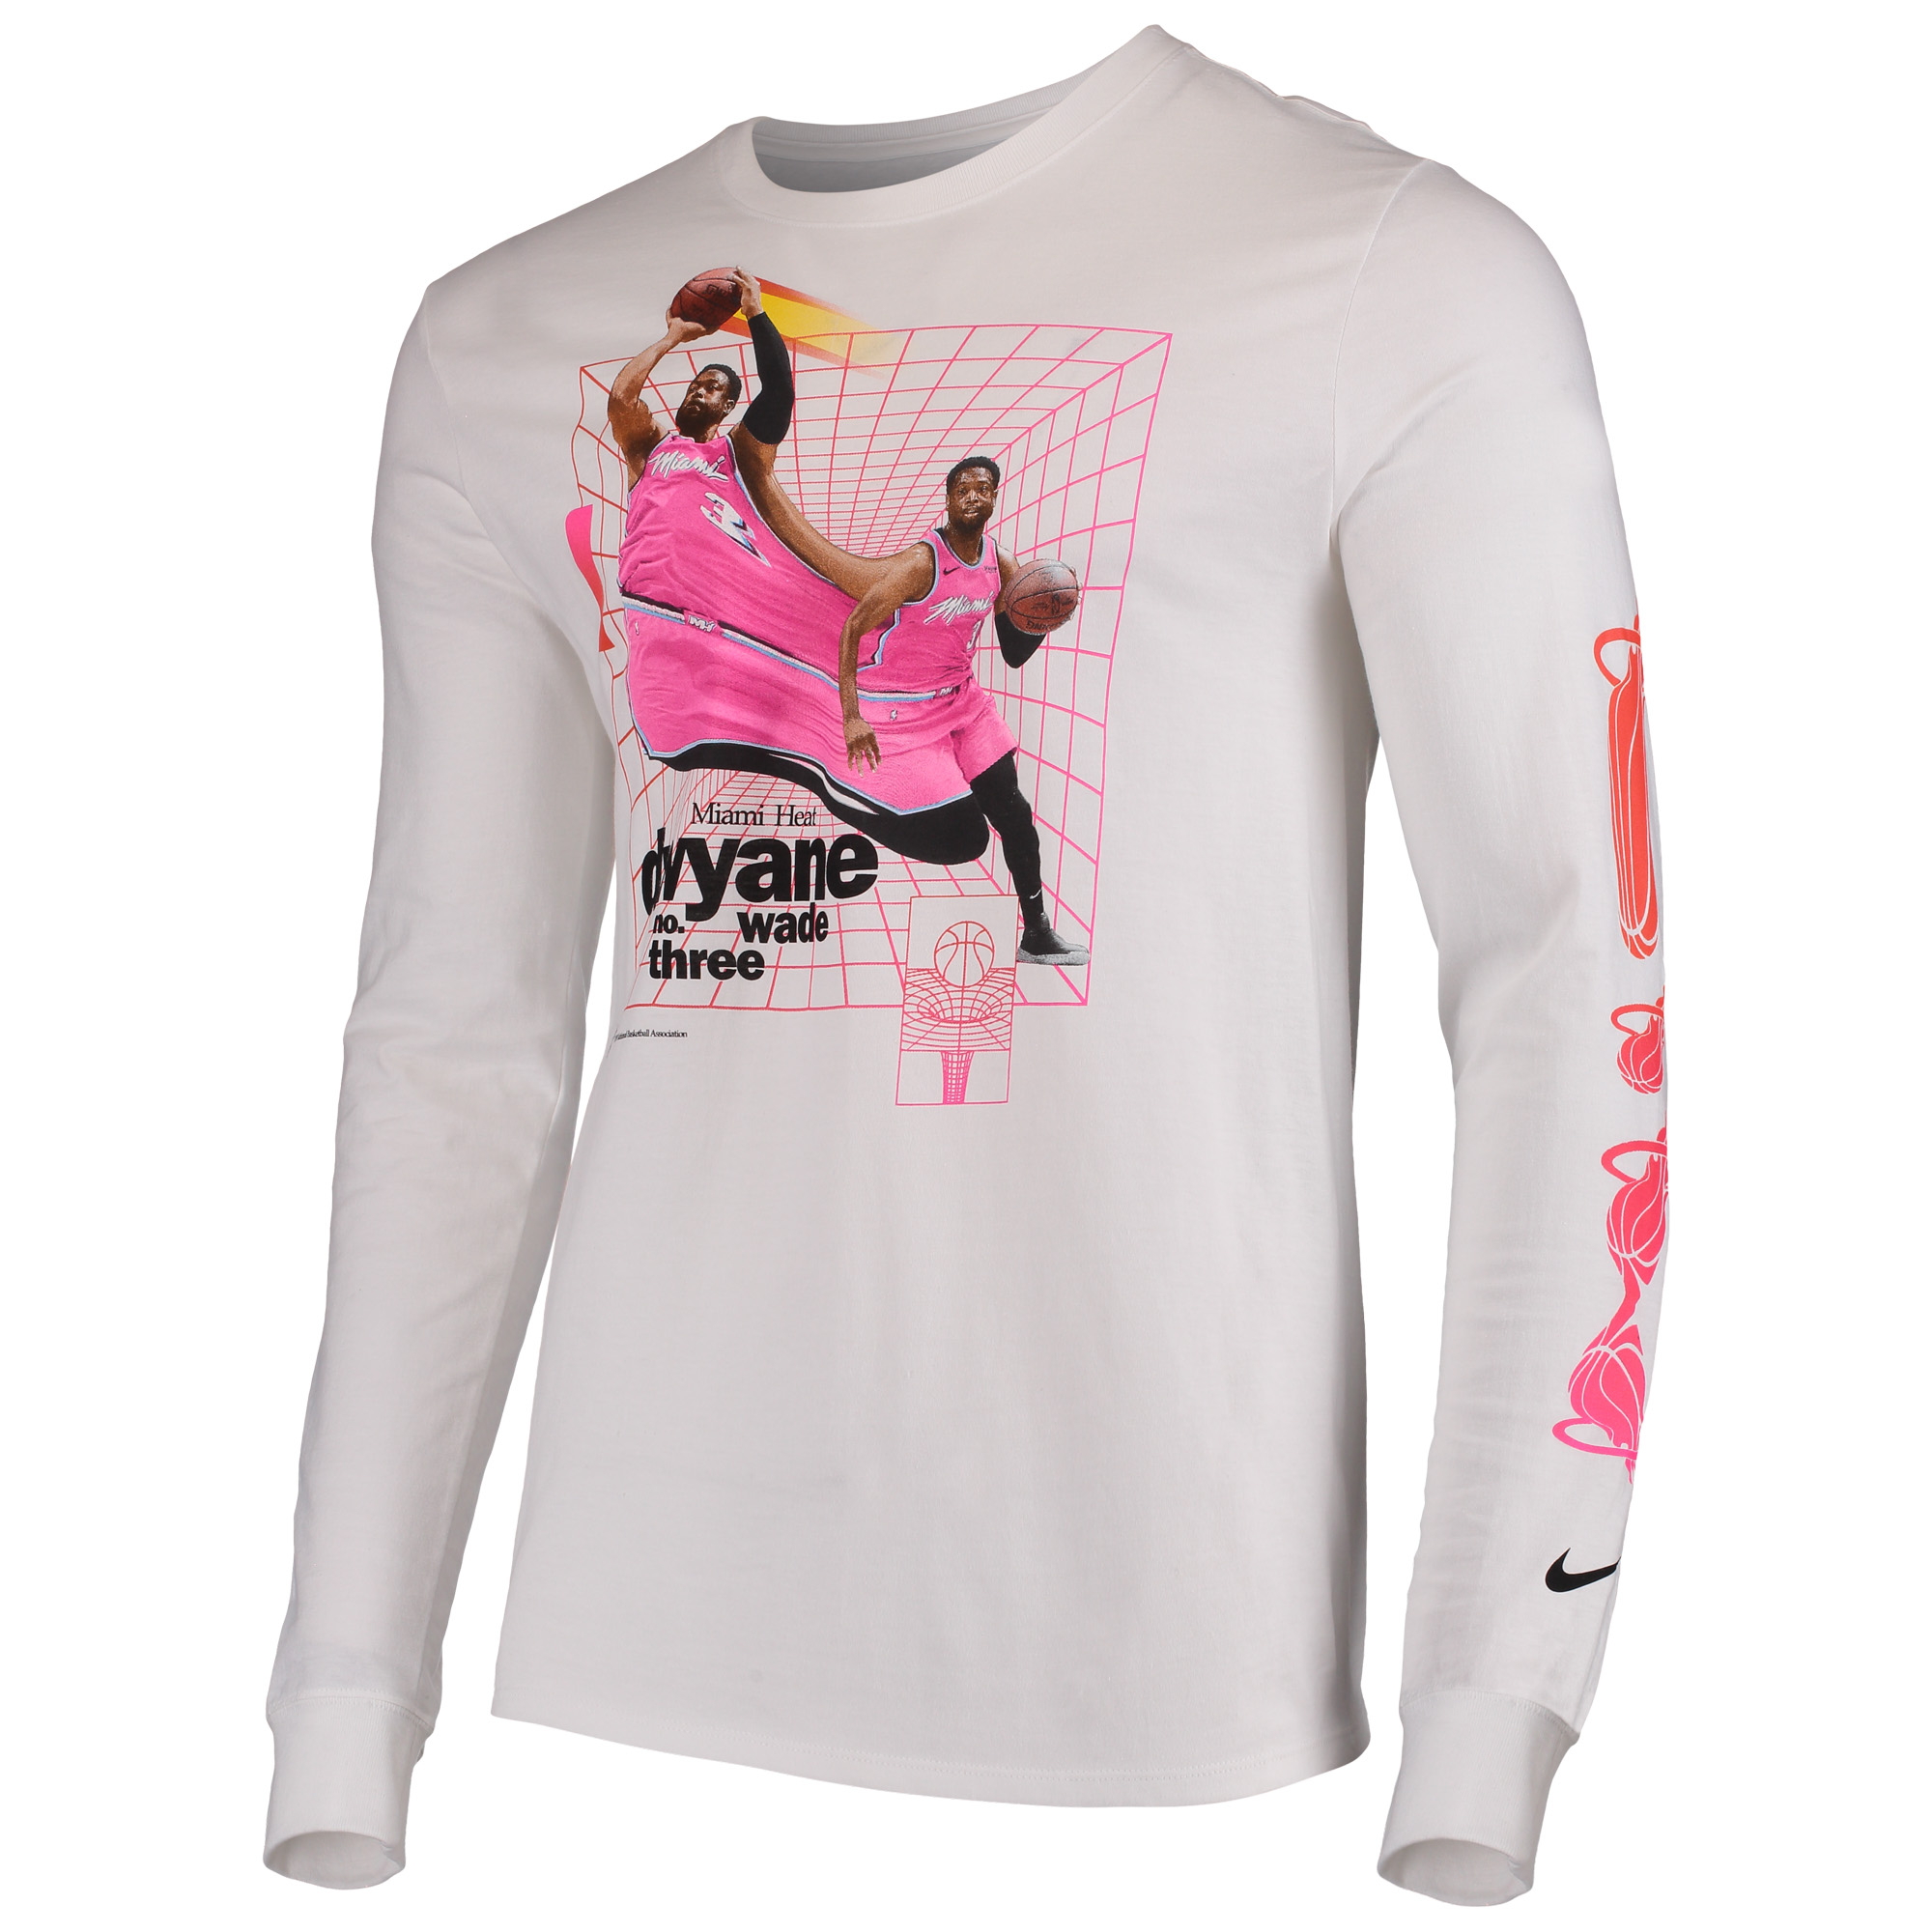 6c0a1a65 Dwyane Wade Miami Heat Nike Time Warp Long Sleeve T-Shirt - White -  Walmart.com